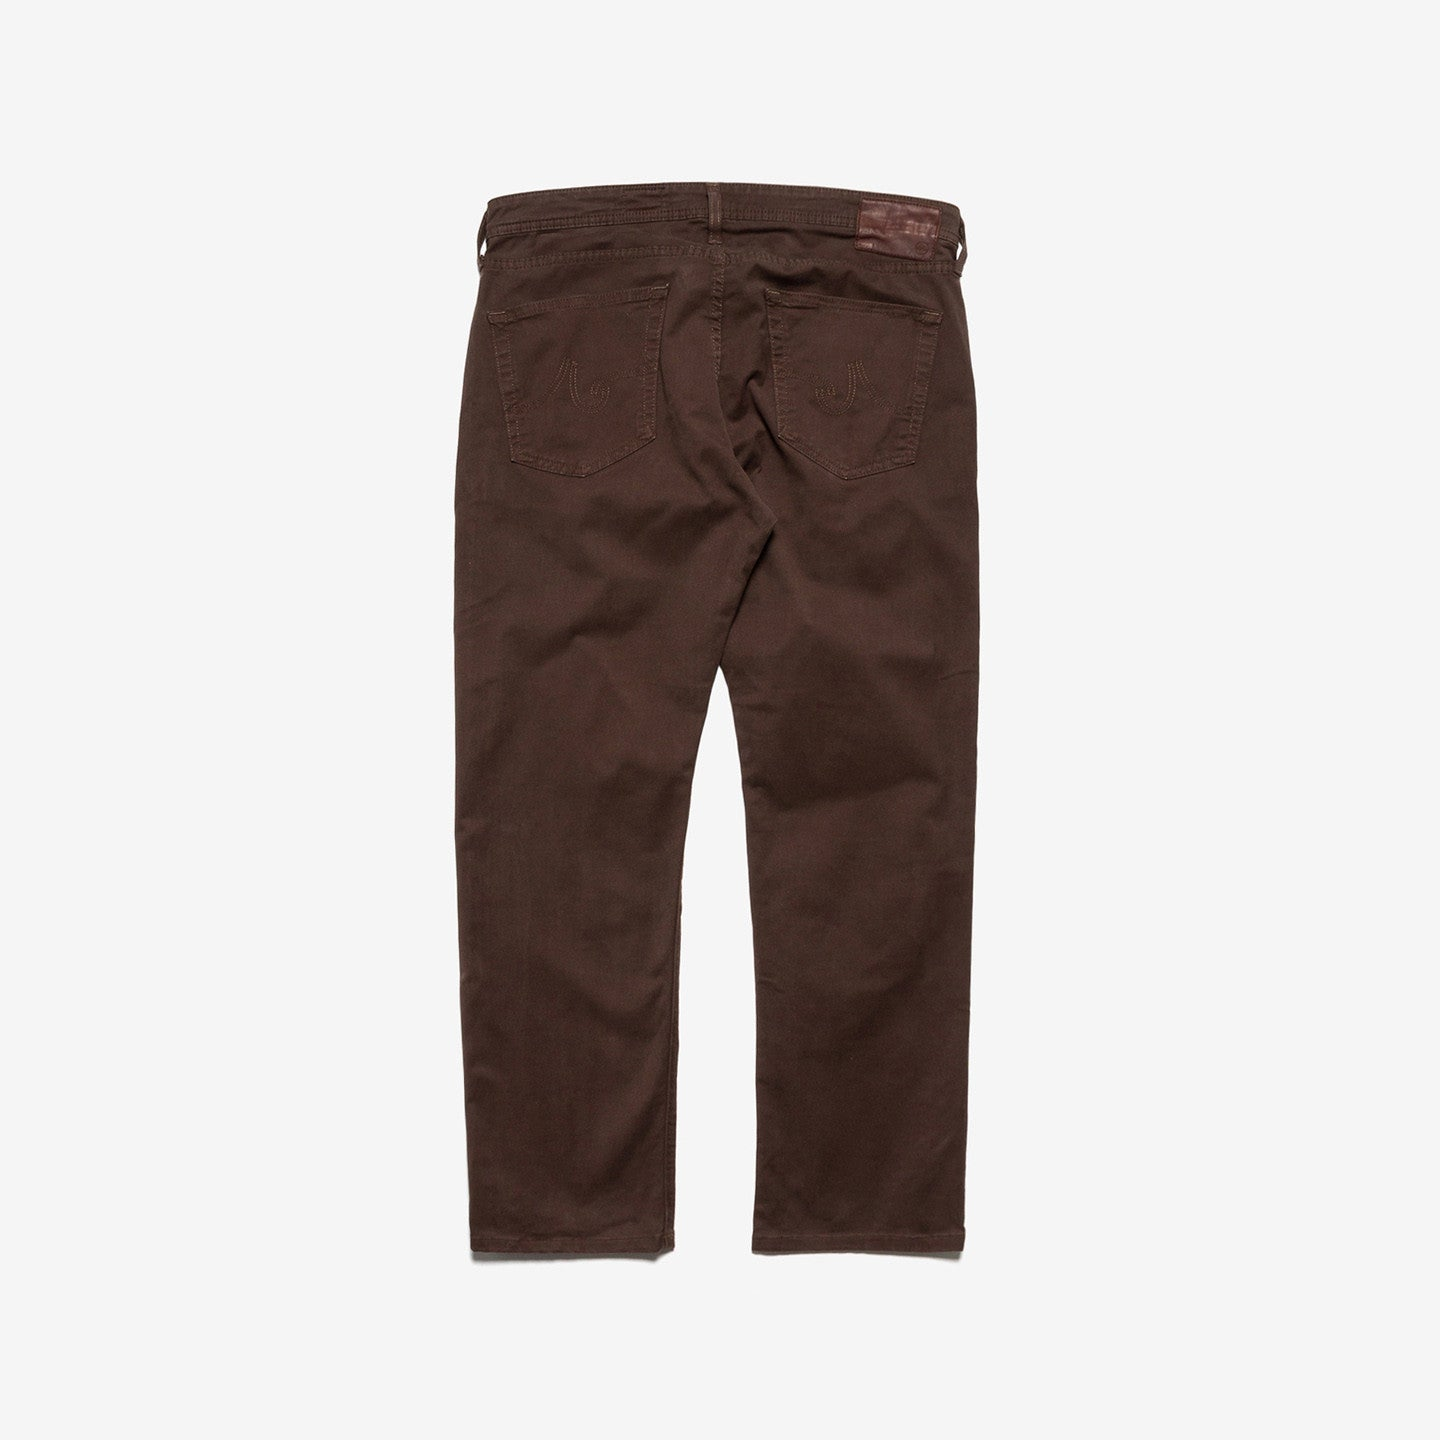 Adriano Goldschmied / The Matchbox Slim Straight Pants